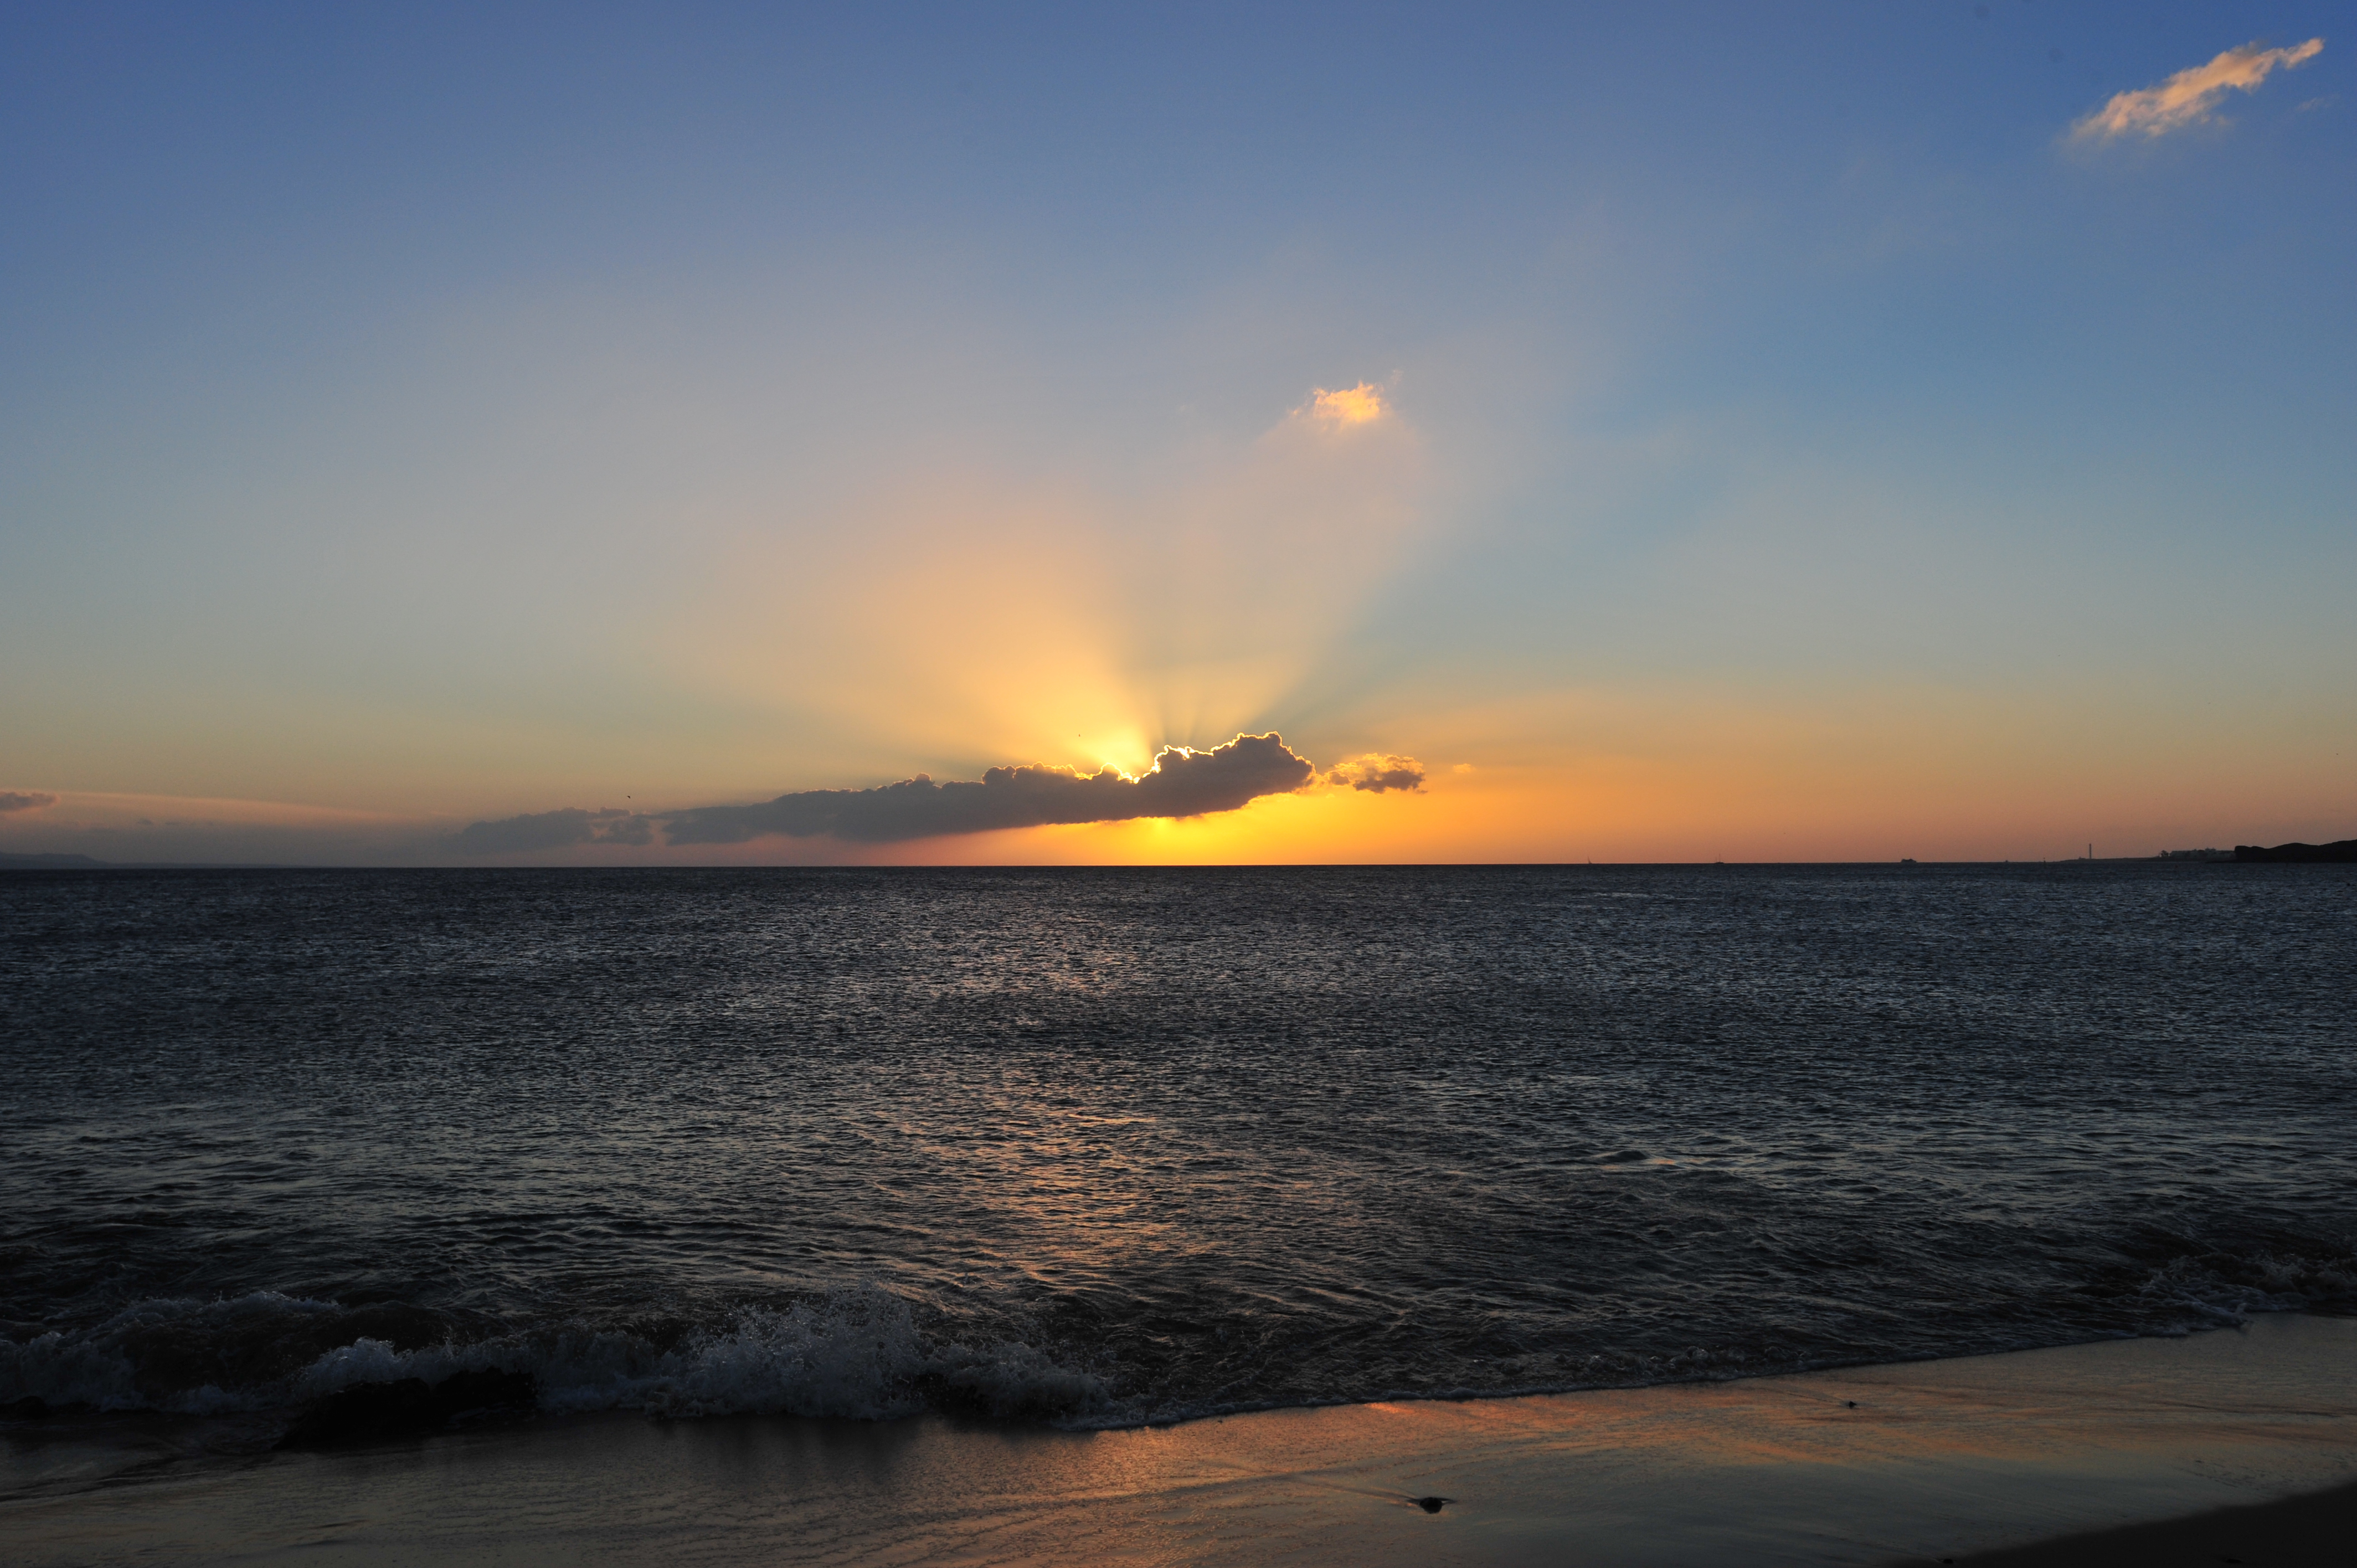 Sunset from the beach at Playa Blanca